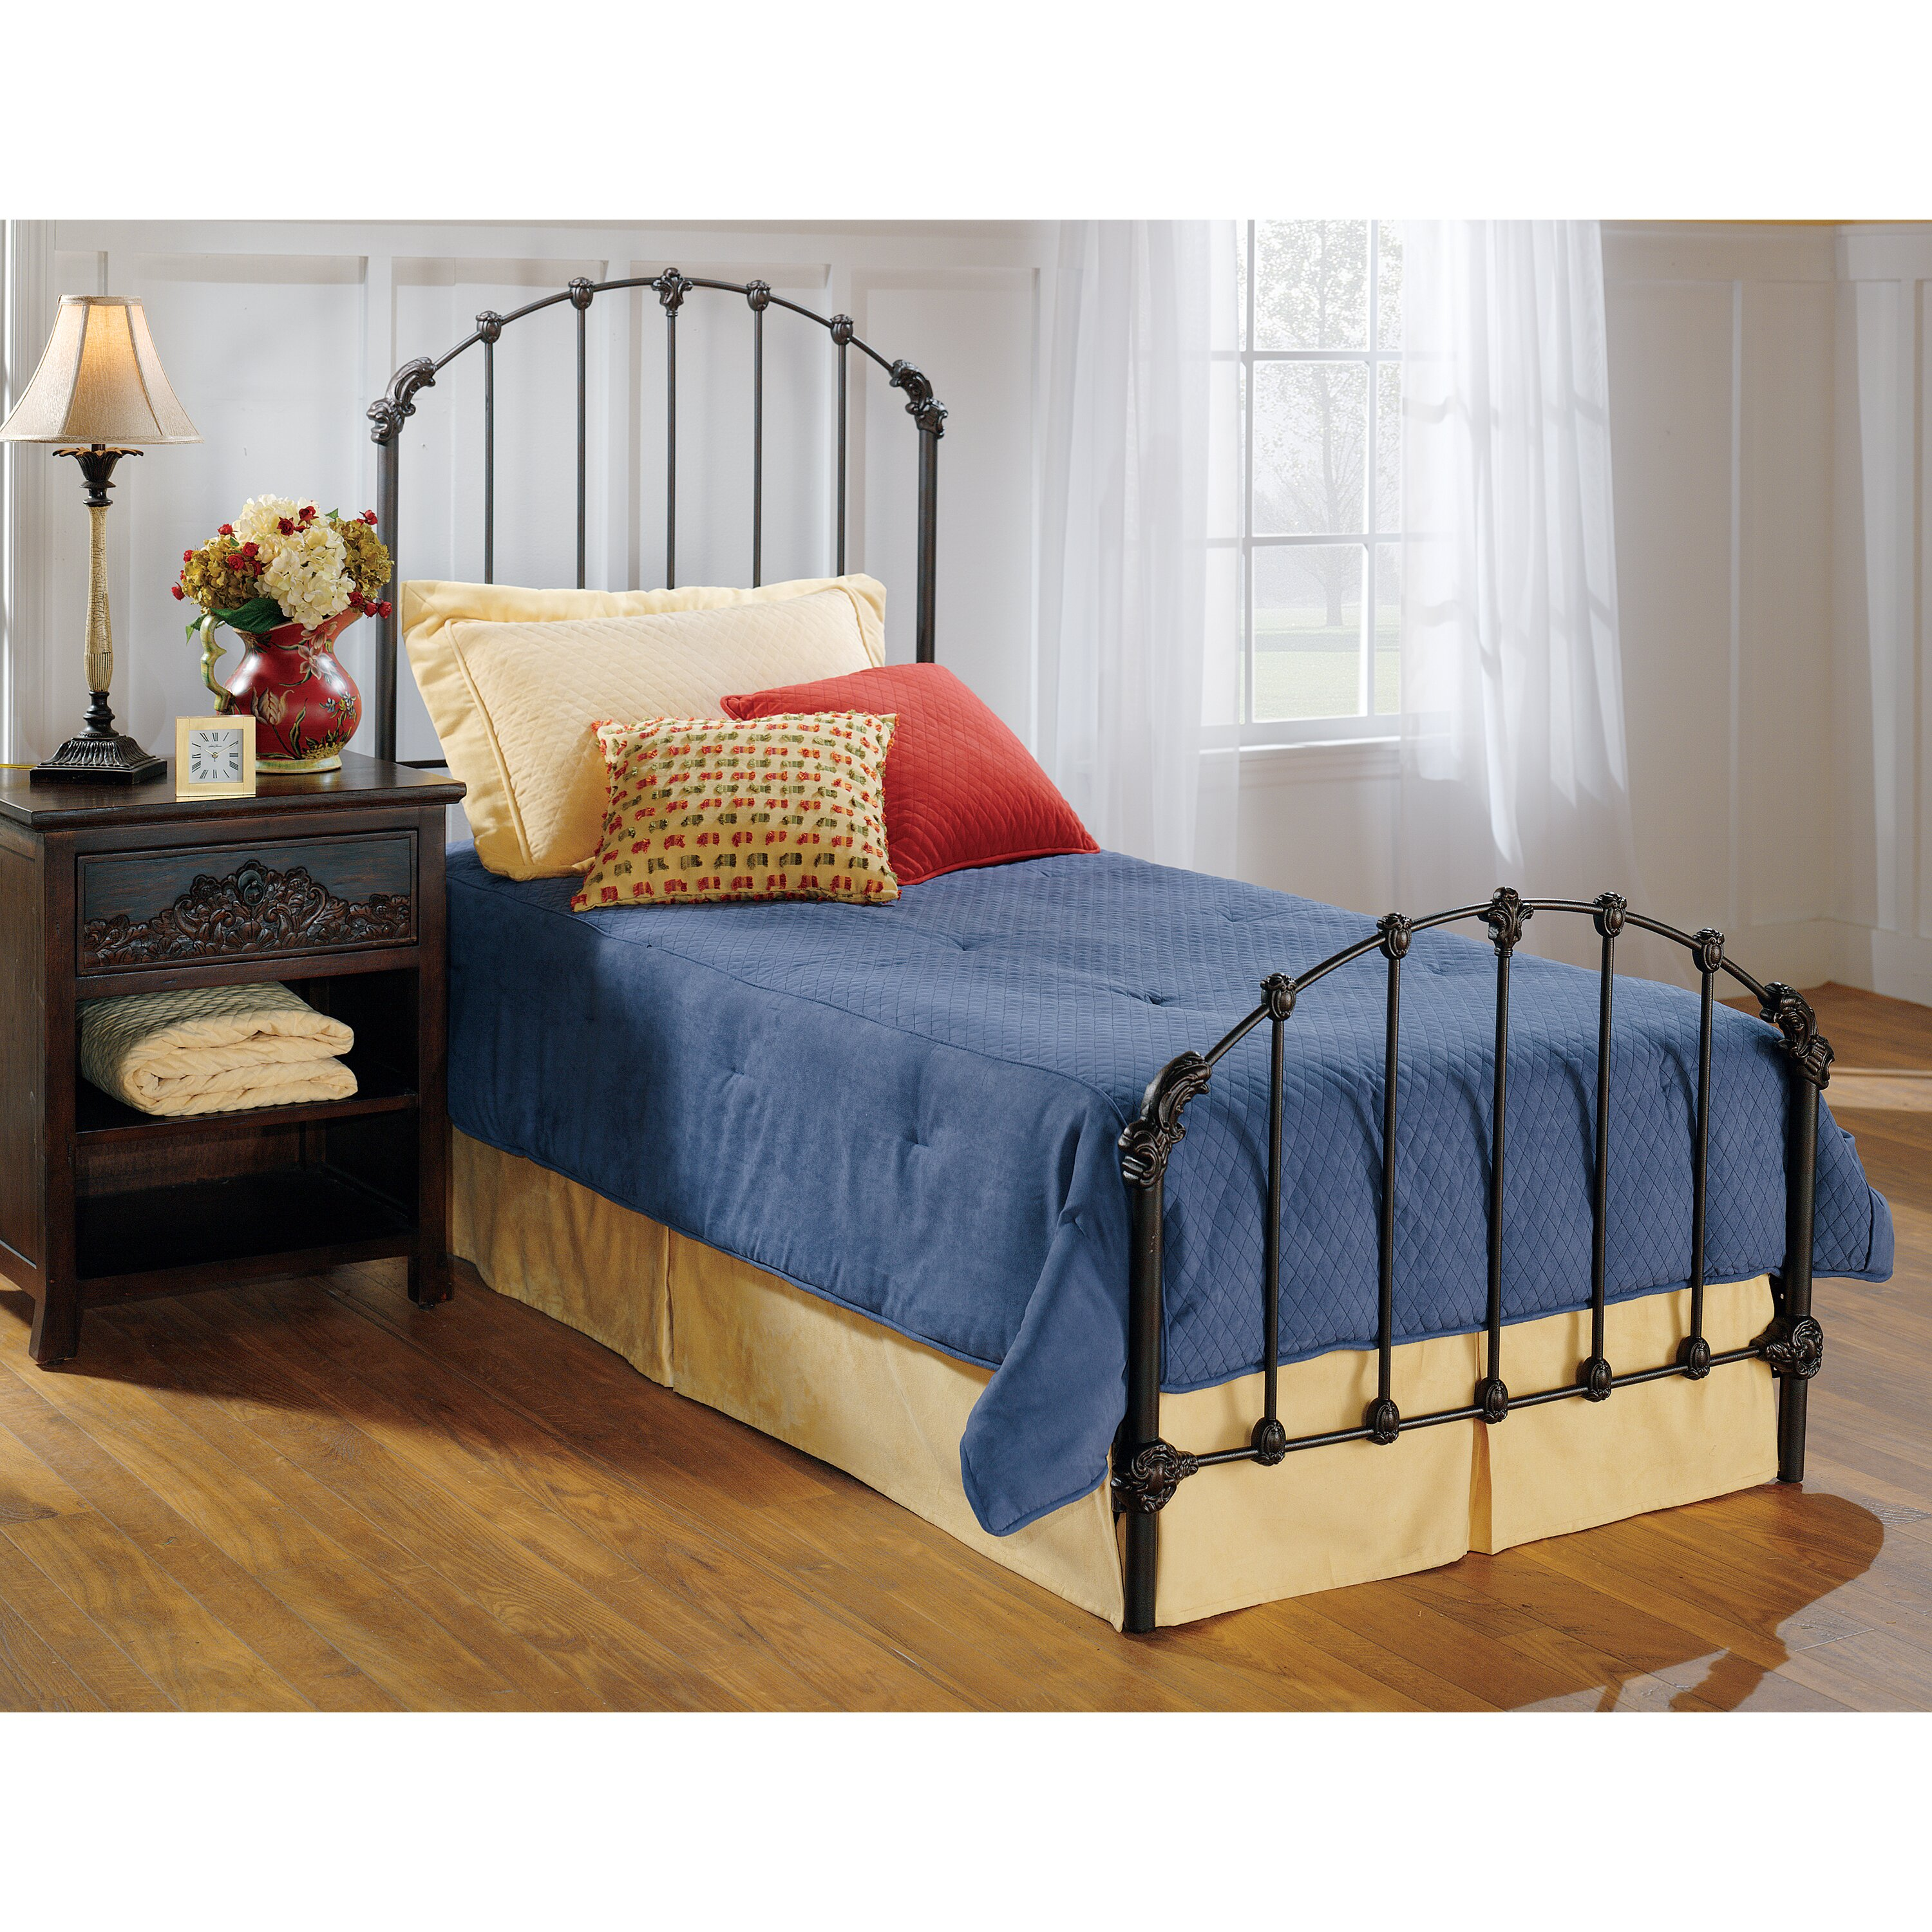 Hillsdale bonita platform bed reviews wayfair for Furniture 2 day shipping